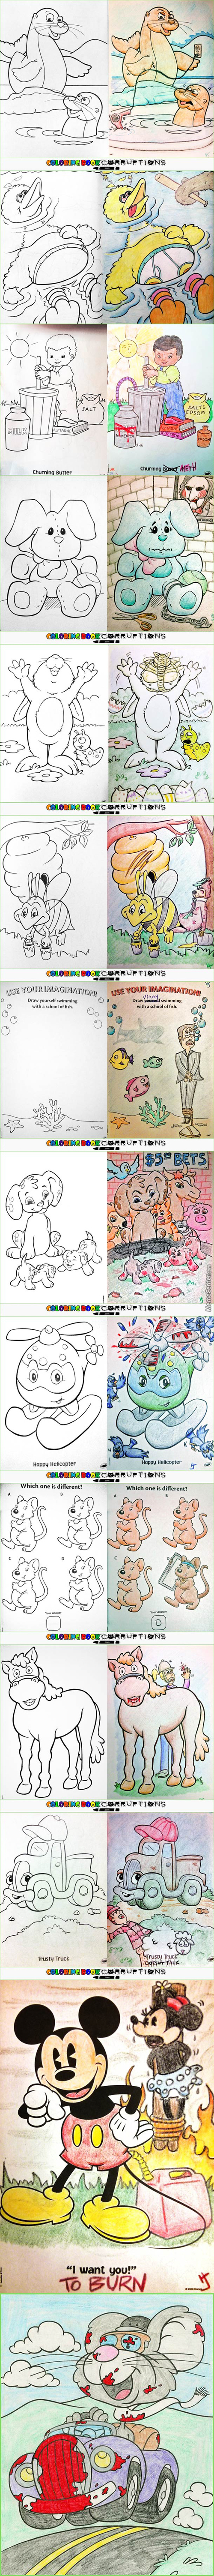 Coloring Book Corruptions New Compilation